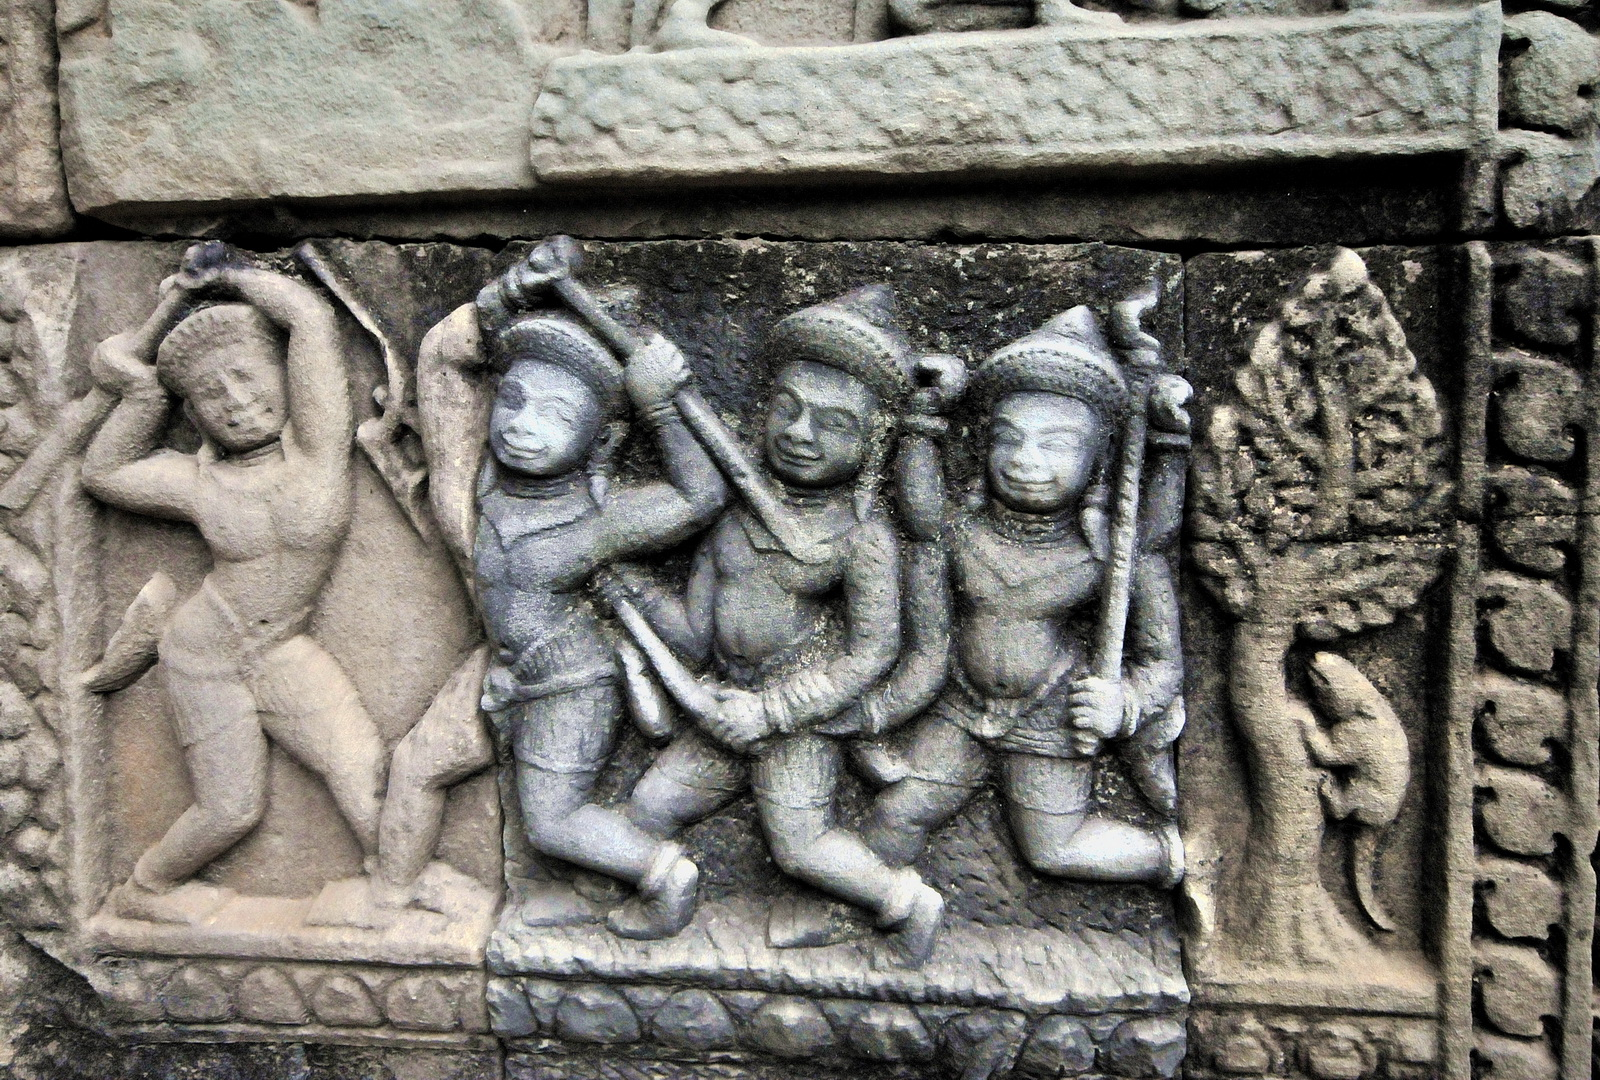 Relief detail